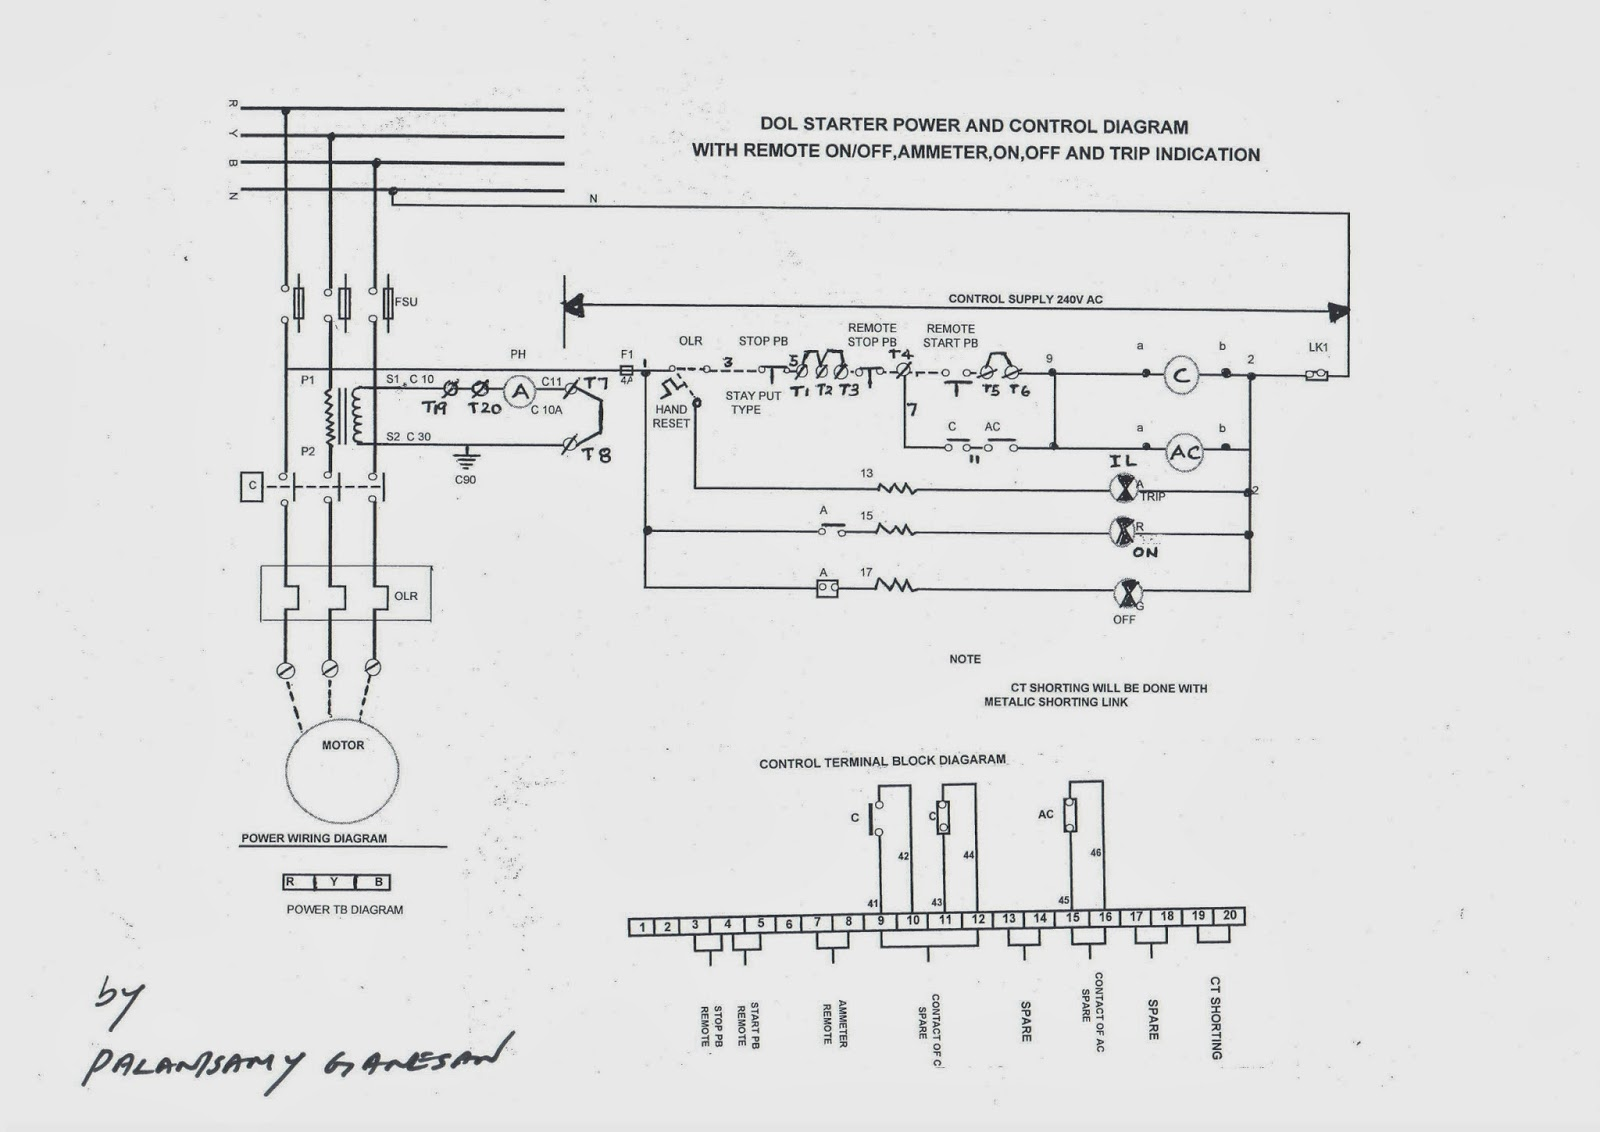 wiring diagram of a single phase dol starter lewis dot for pf3 230v free engine image